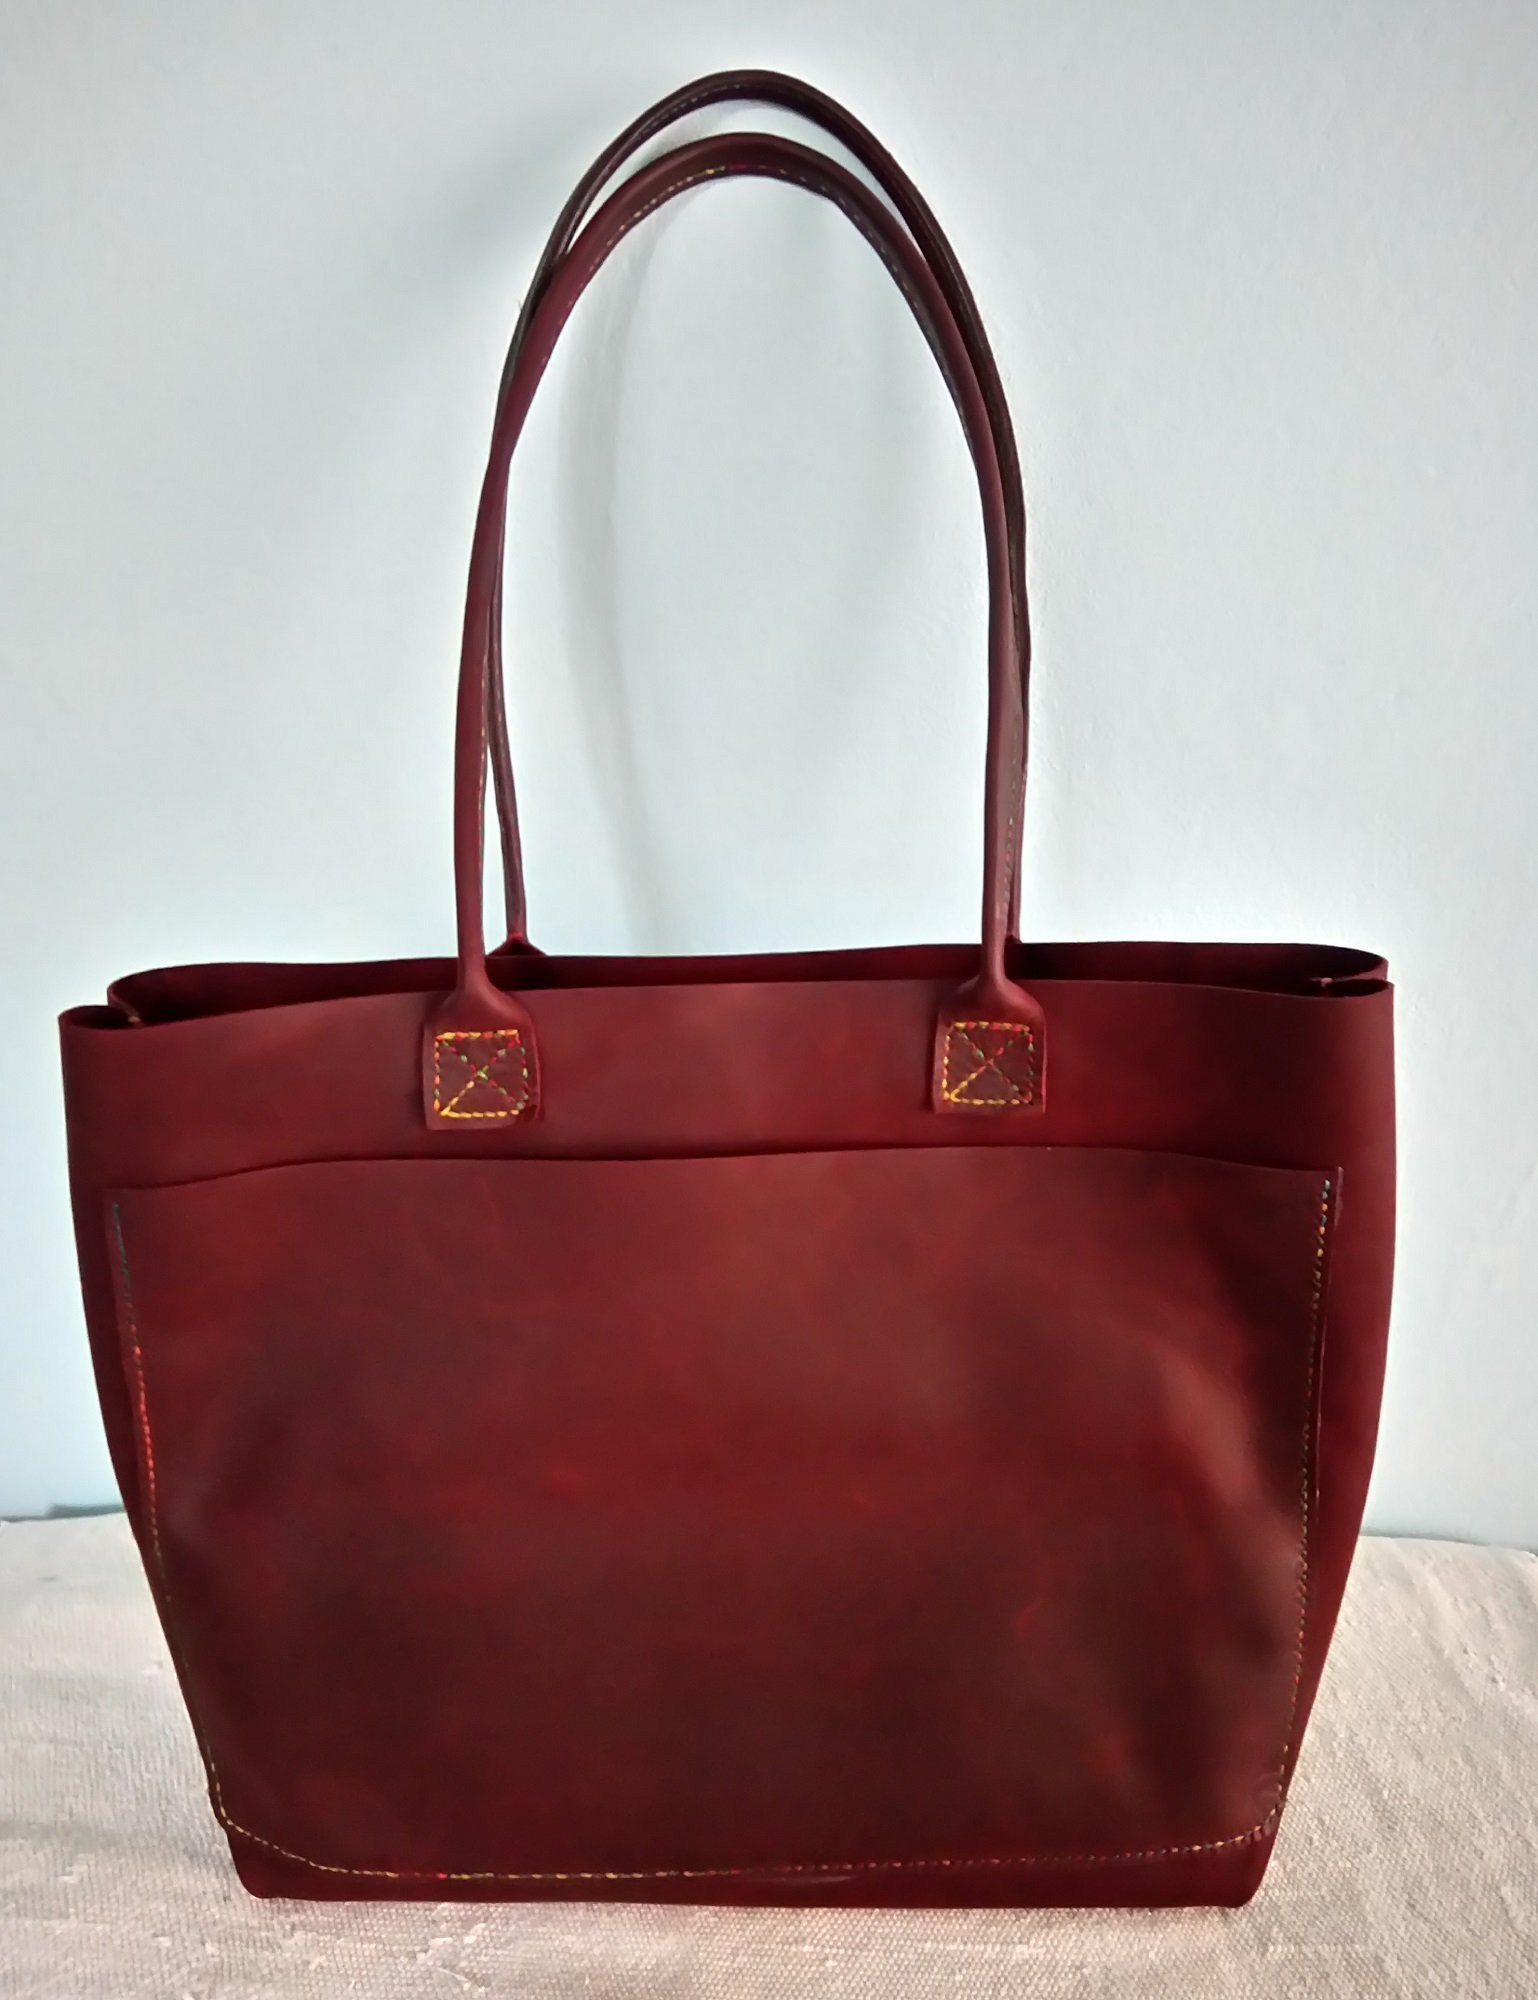 Handmade Leather Tote Bag Leather Tote Handbags for Women Burgundy Large